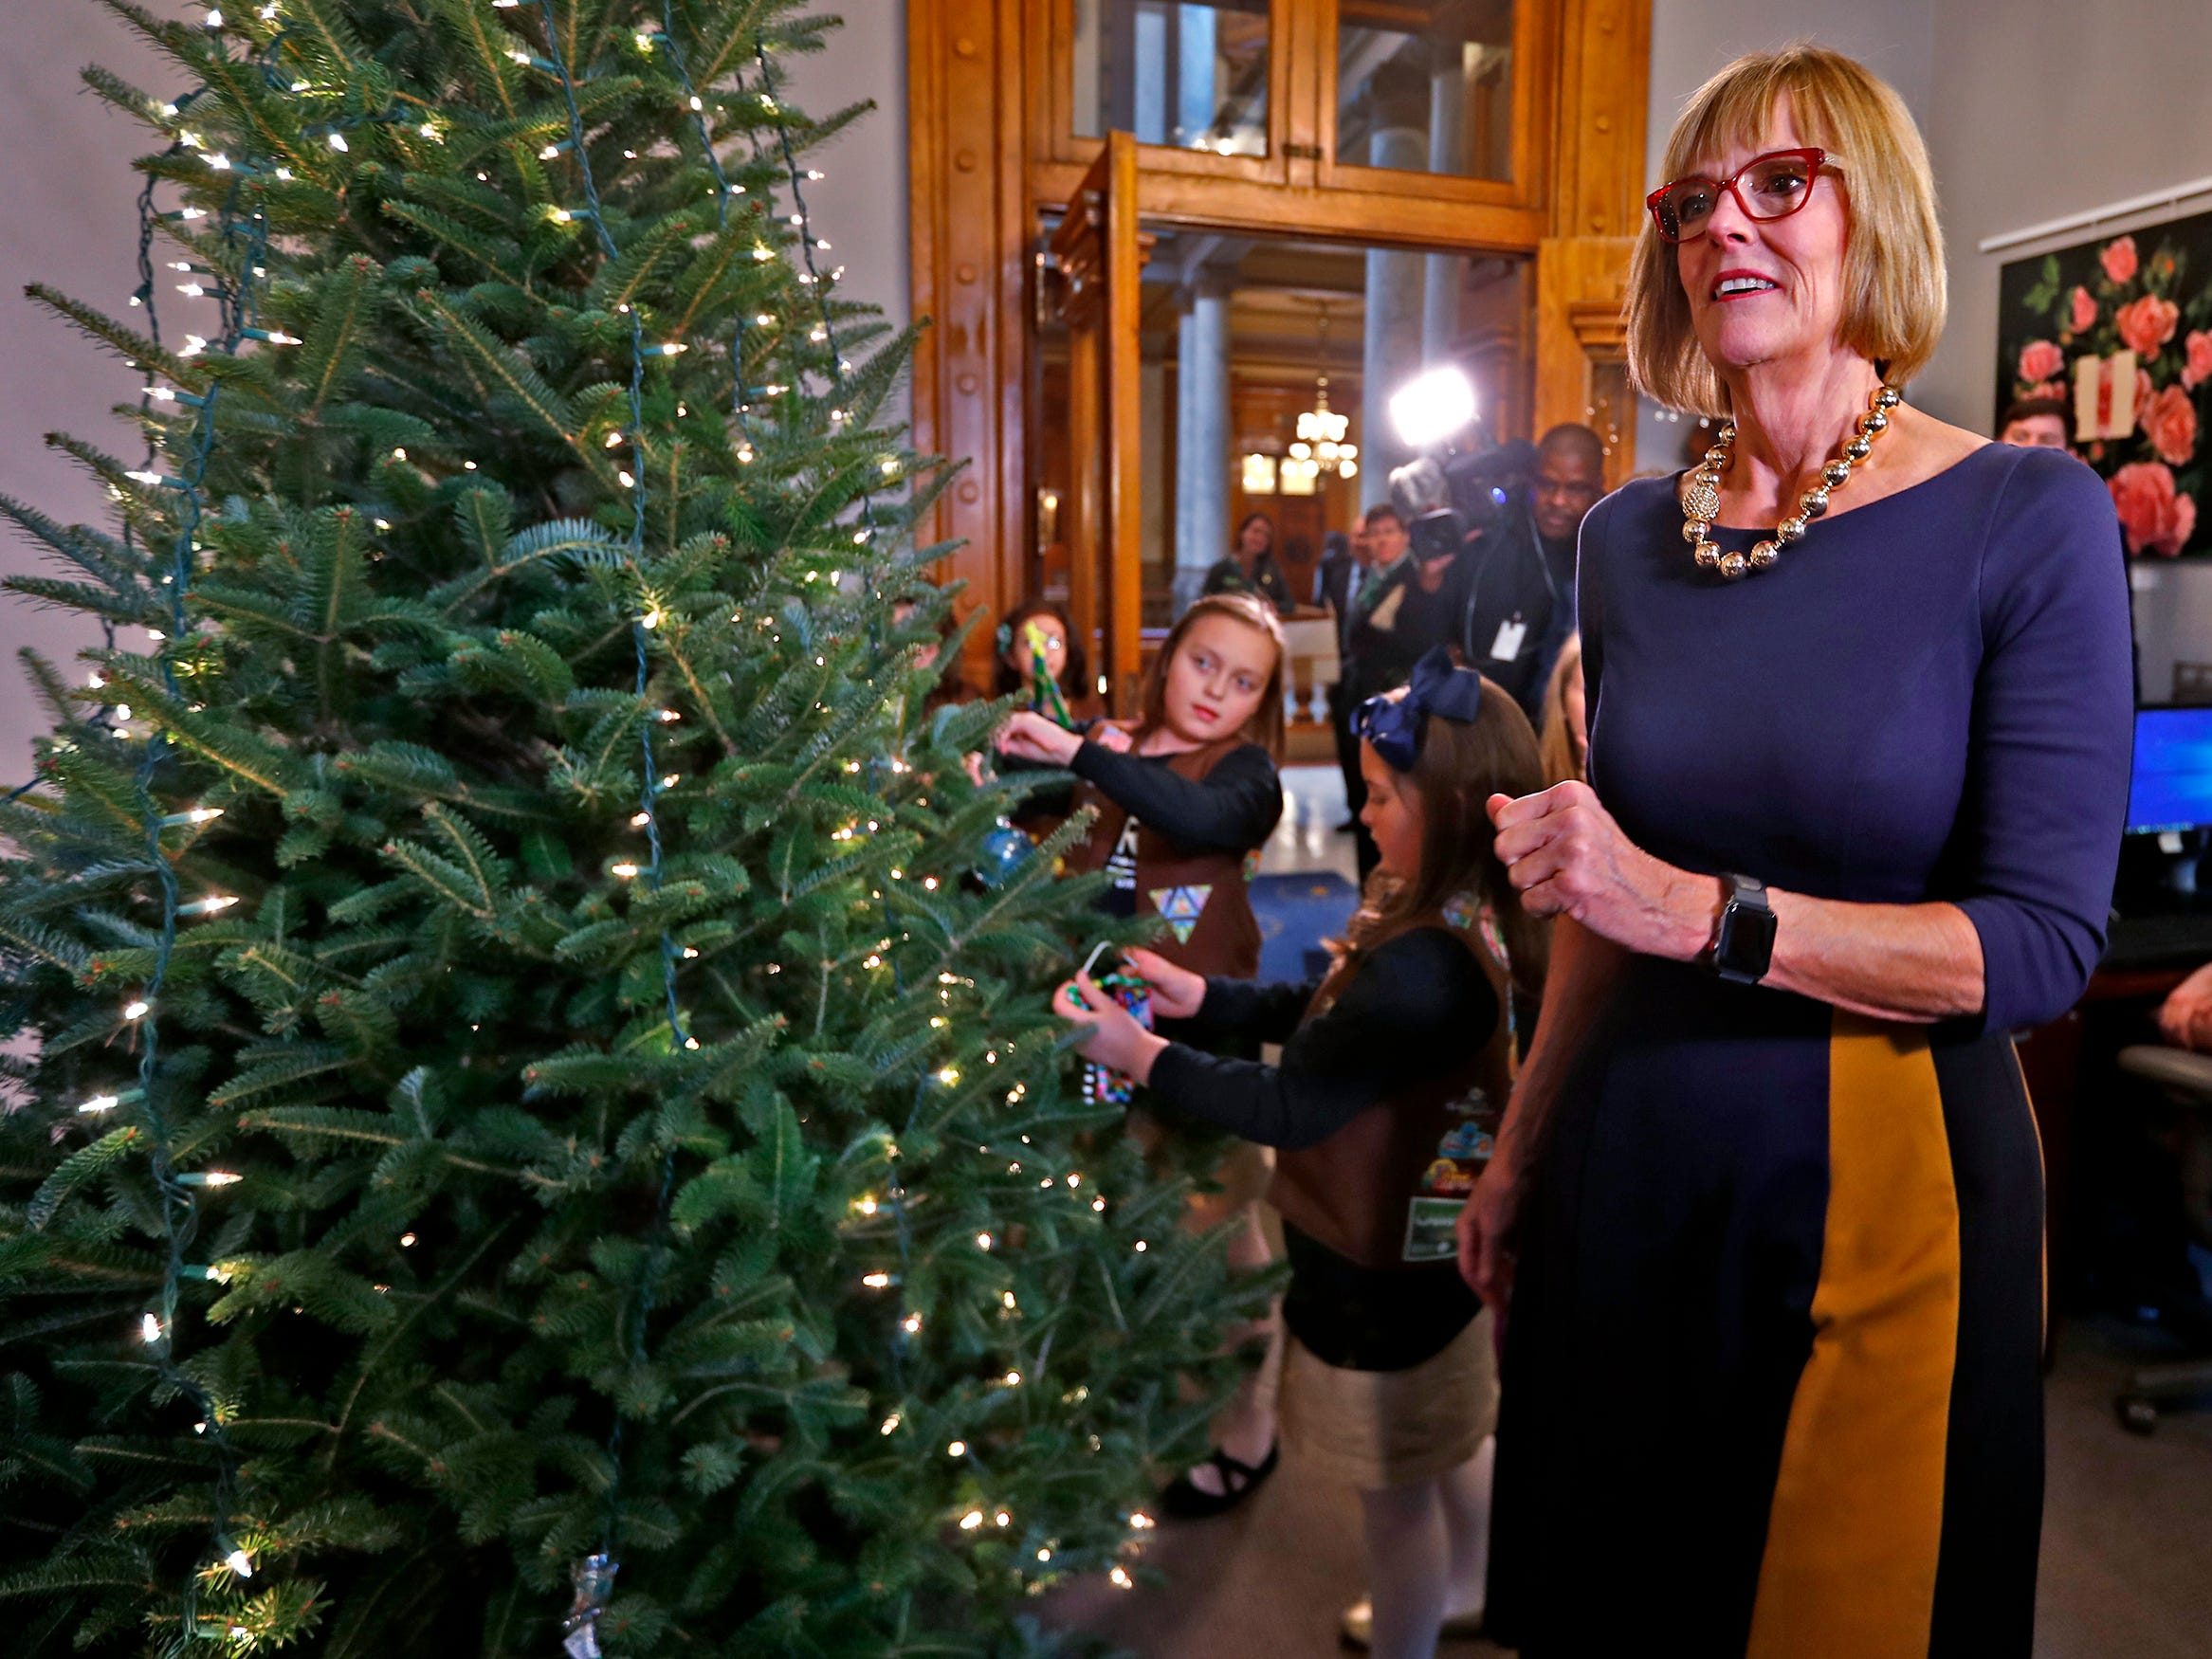 Lieutenant Governor Suzanne Crouch is joined by Brownies to decorate her Indiana Statehouse tree for the holidays, Wednesday, Dec. 5, 2018.  They used ornaments created by Girl Scouts from across Central Indiana for the tree.